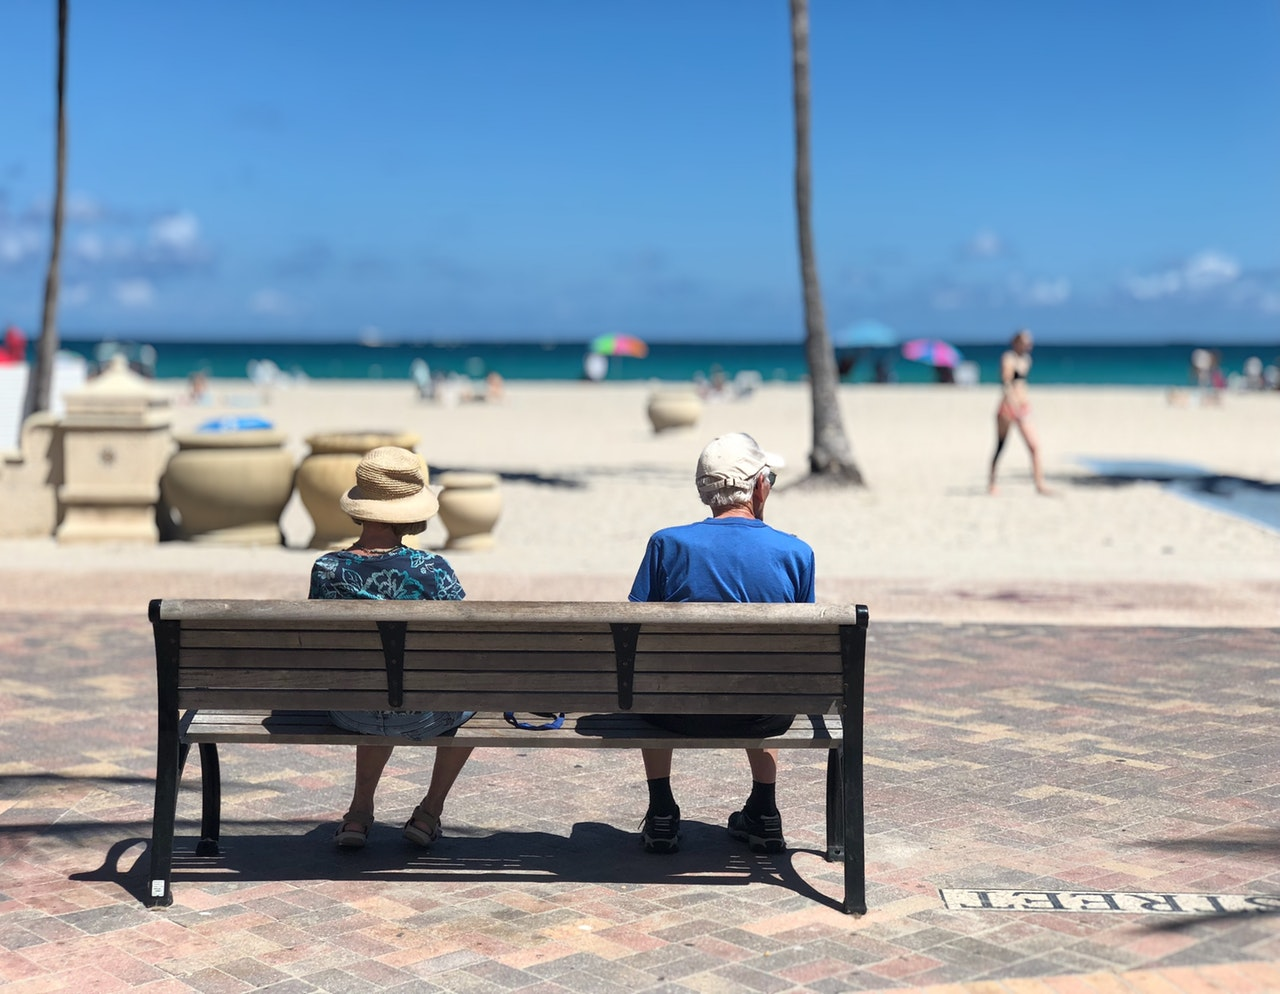 4 Things Retirees Should Know Before Buying a Vacation Home